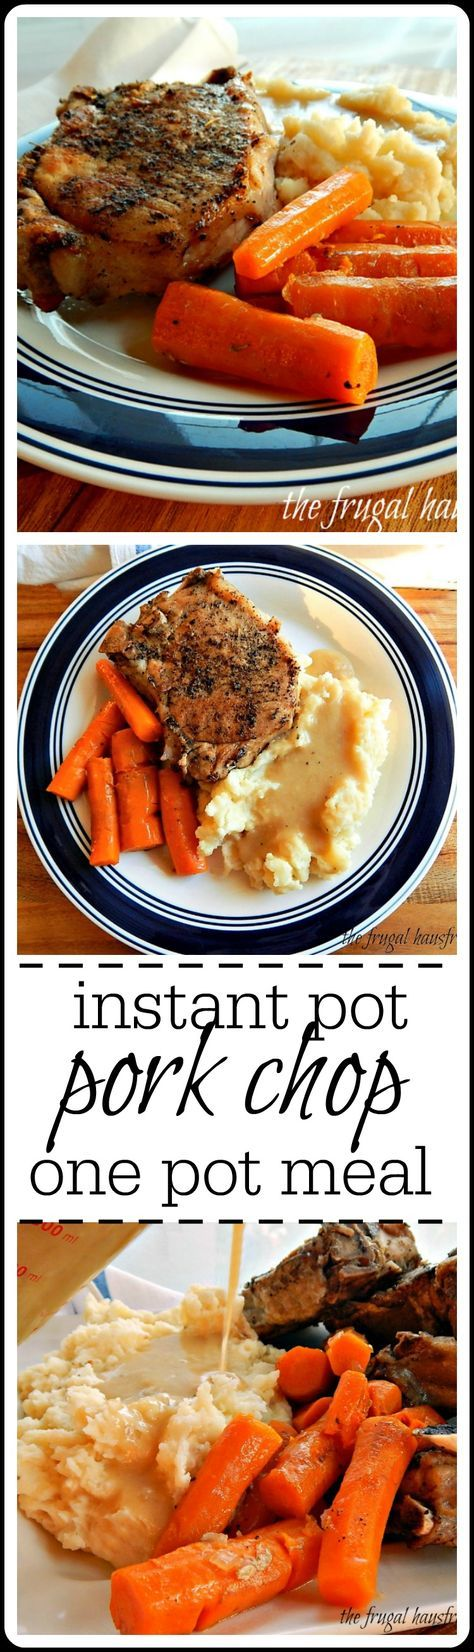 Instant Pot Pork Chops - the whole meal is cooked at once, then the potatoes mashed and the gravy made right in the instant pot.